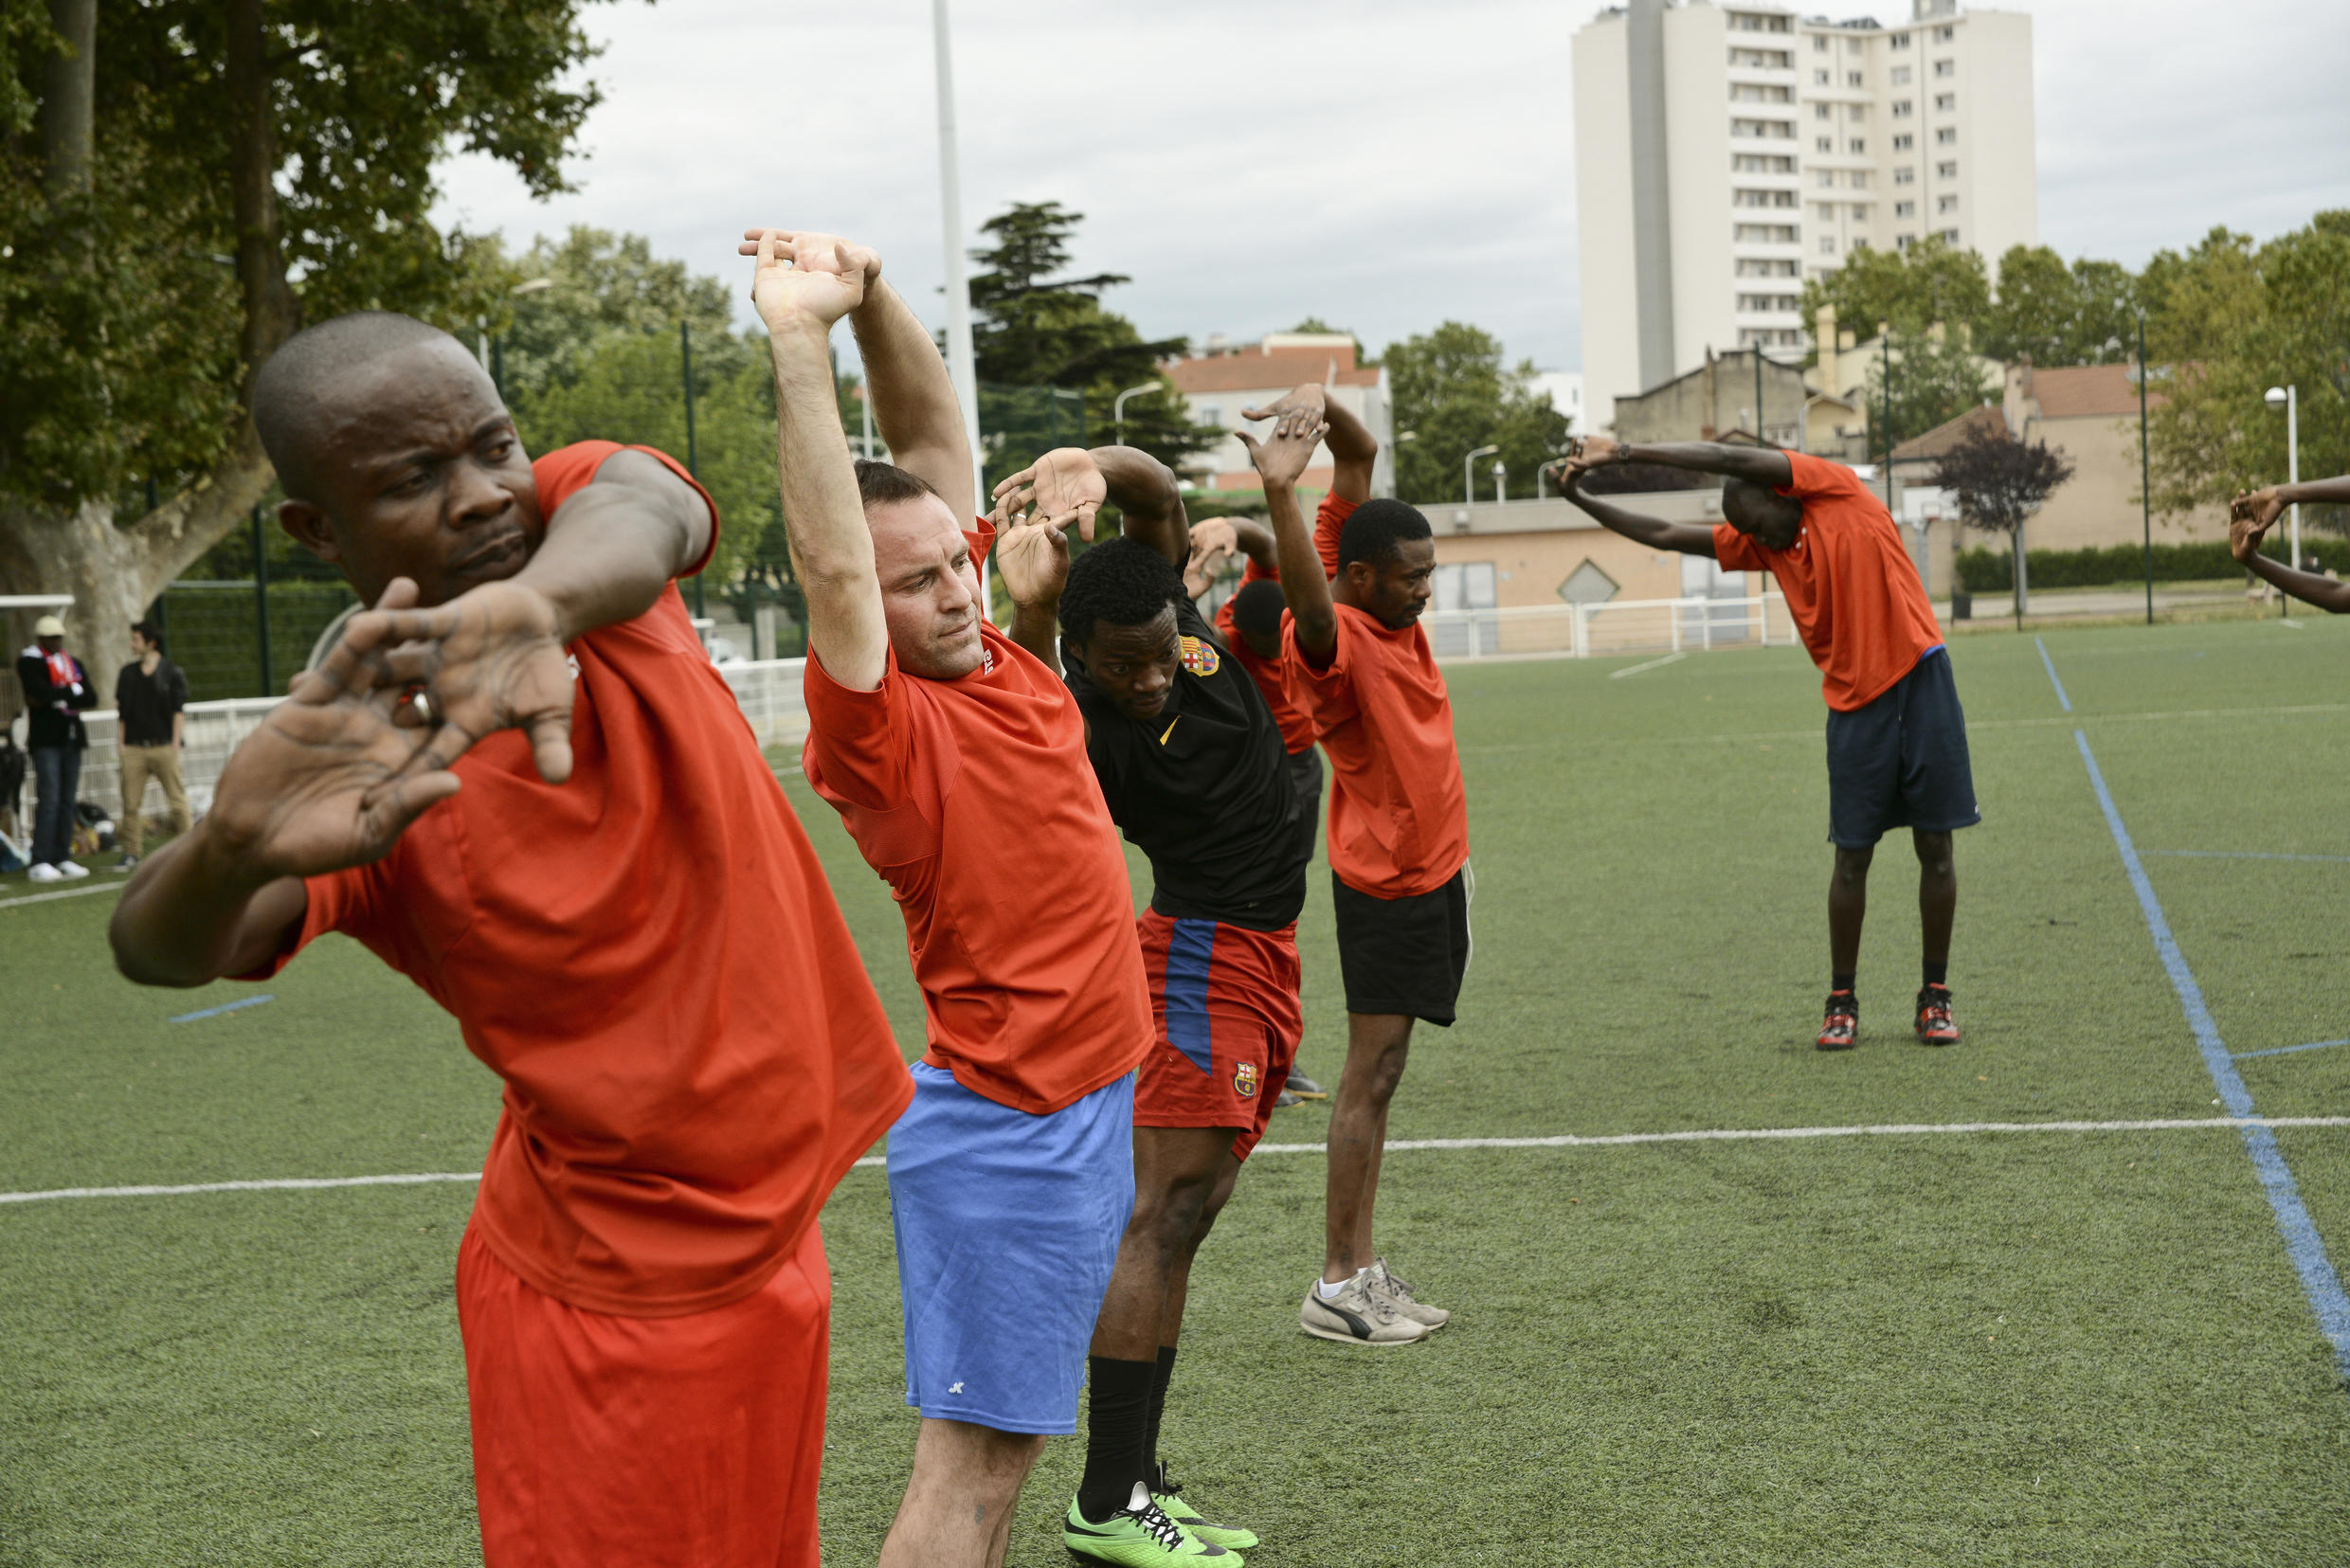 The team trains every Friday in the Mermoz district in Lyon.